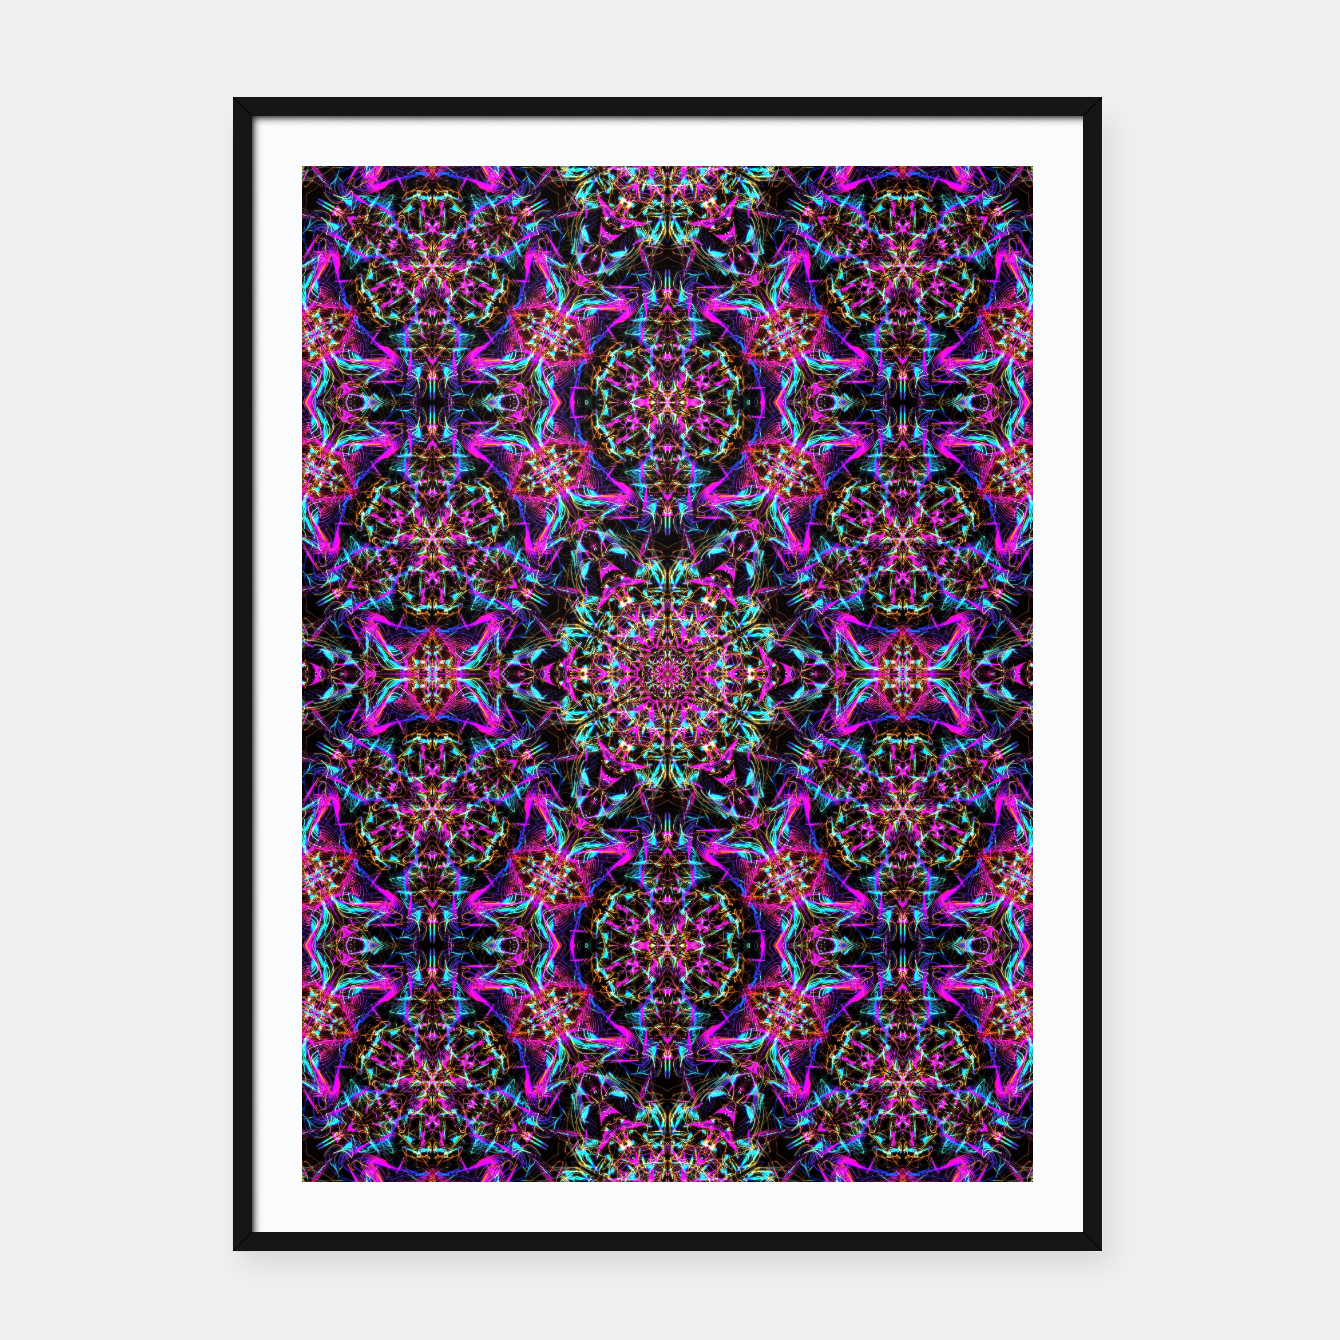 Zdjęcie Neon Psychedelic Mandala I Framed poster - Live Heroes